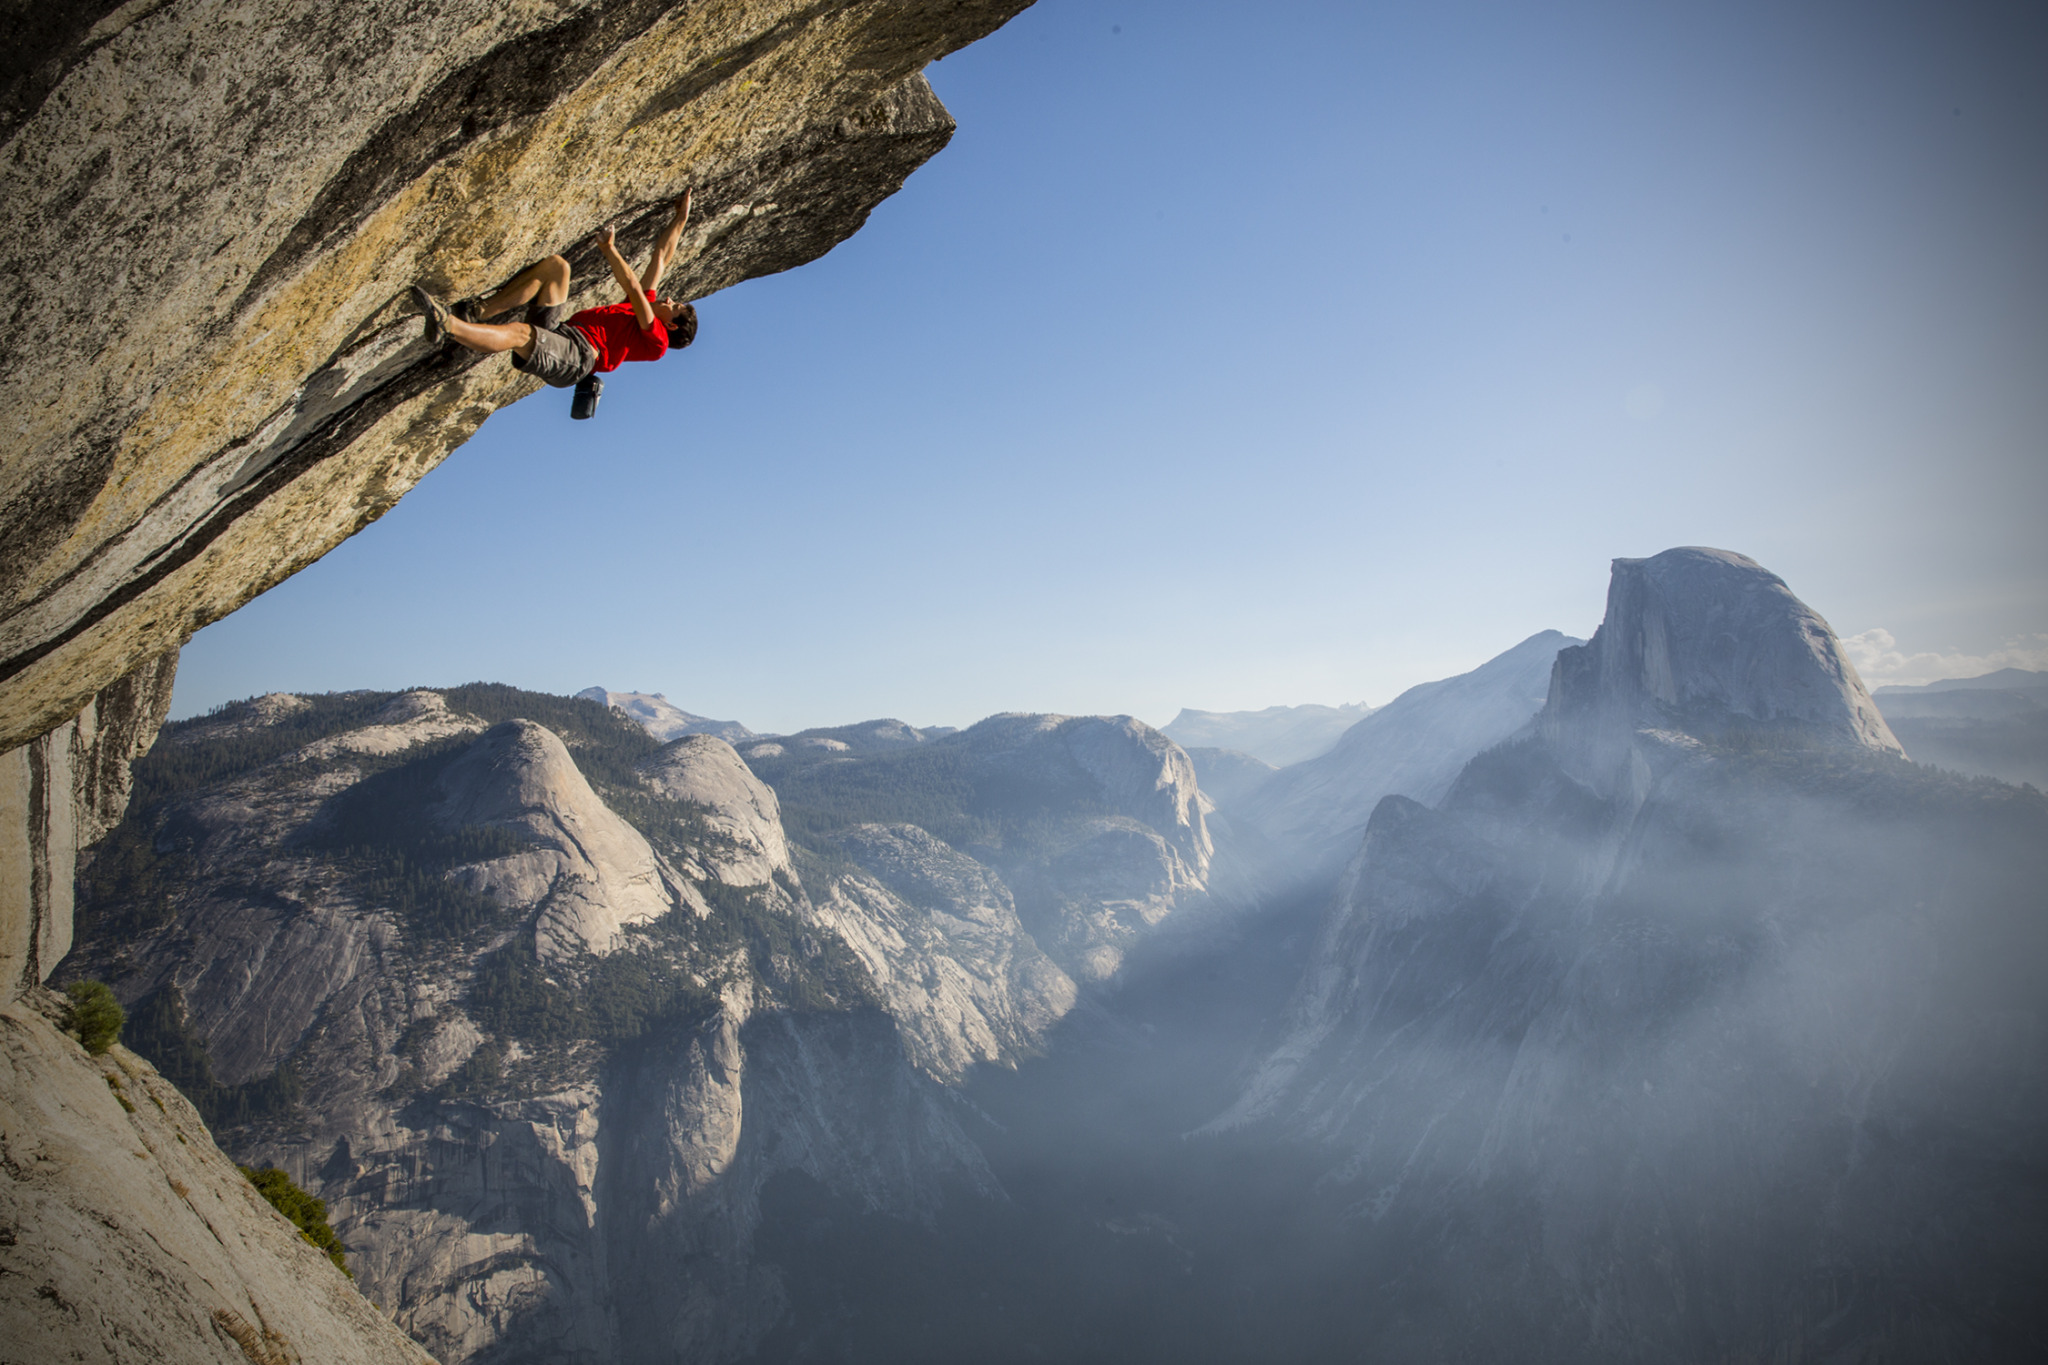 Wallpaper Falling Off Wall Alex Honnold Tells His Story In Alone On The Wall